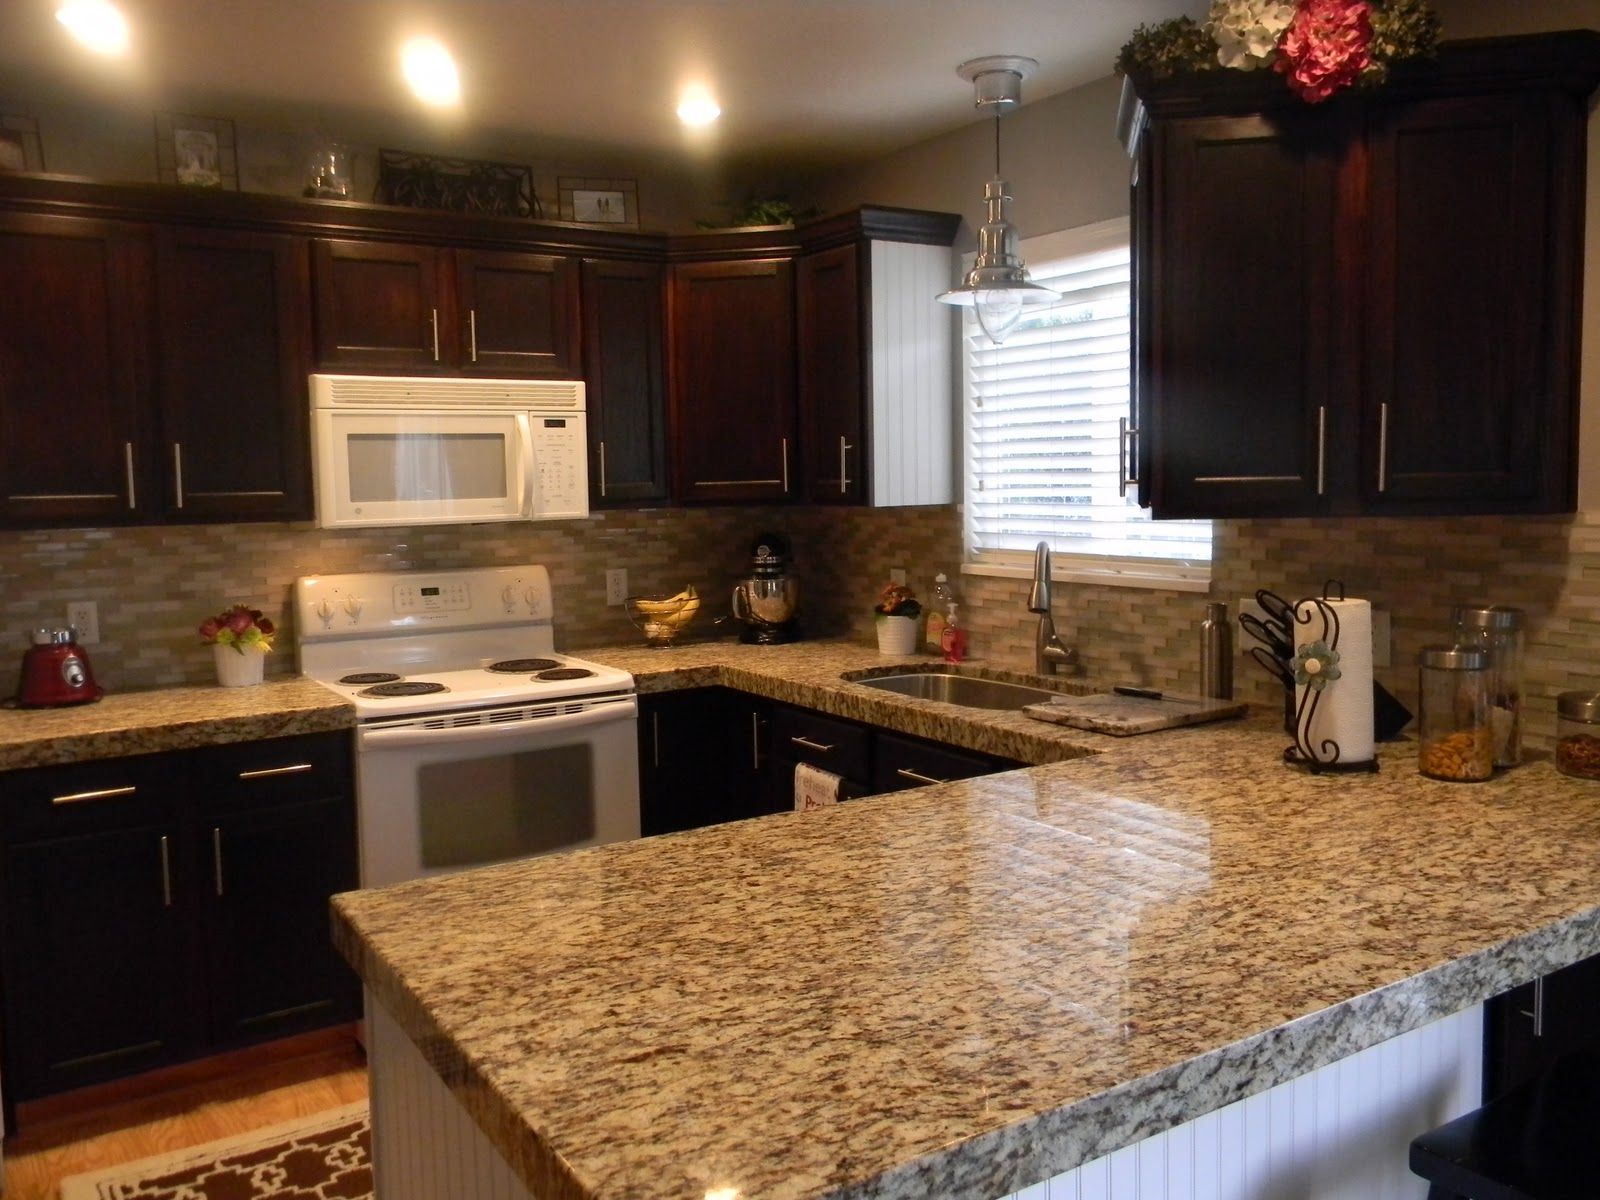 how to put backsplash in kitchen do it yourself duo a backsplash for your kitchen 7855